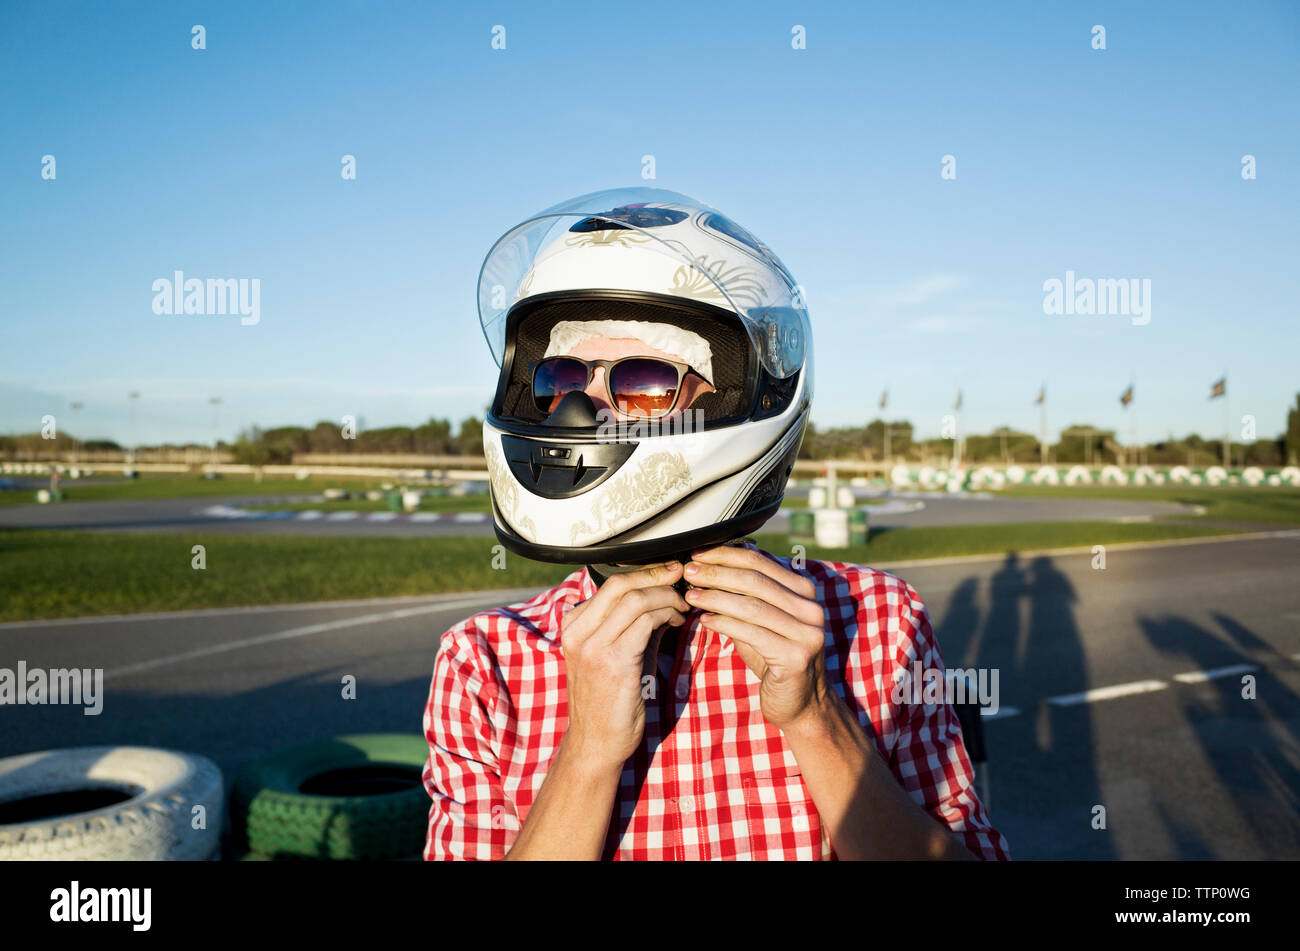 Close-up of man wearing helmet while standing at Motor Racing Track - Stock Image